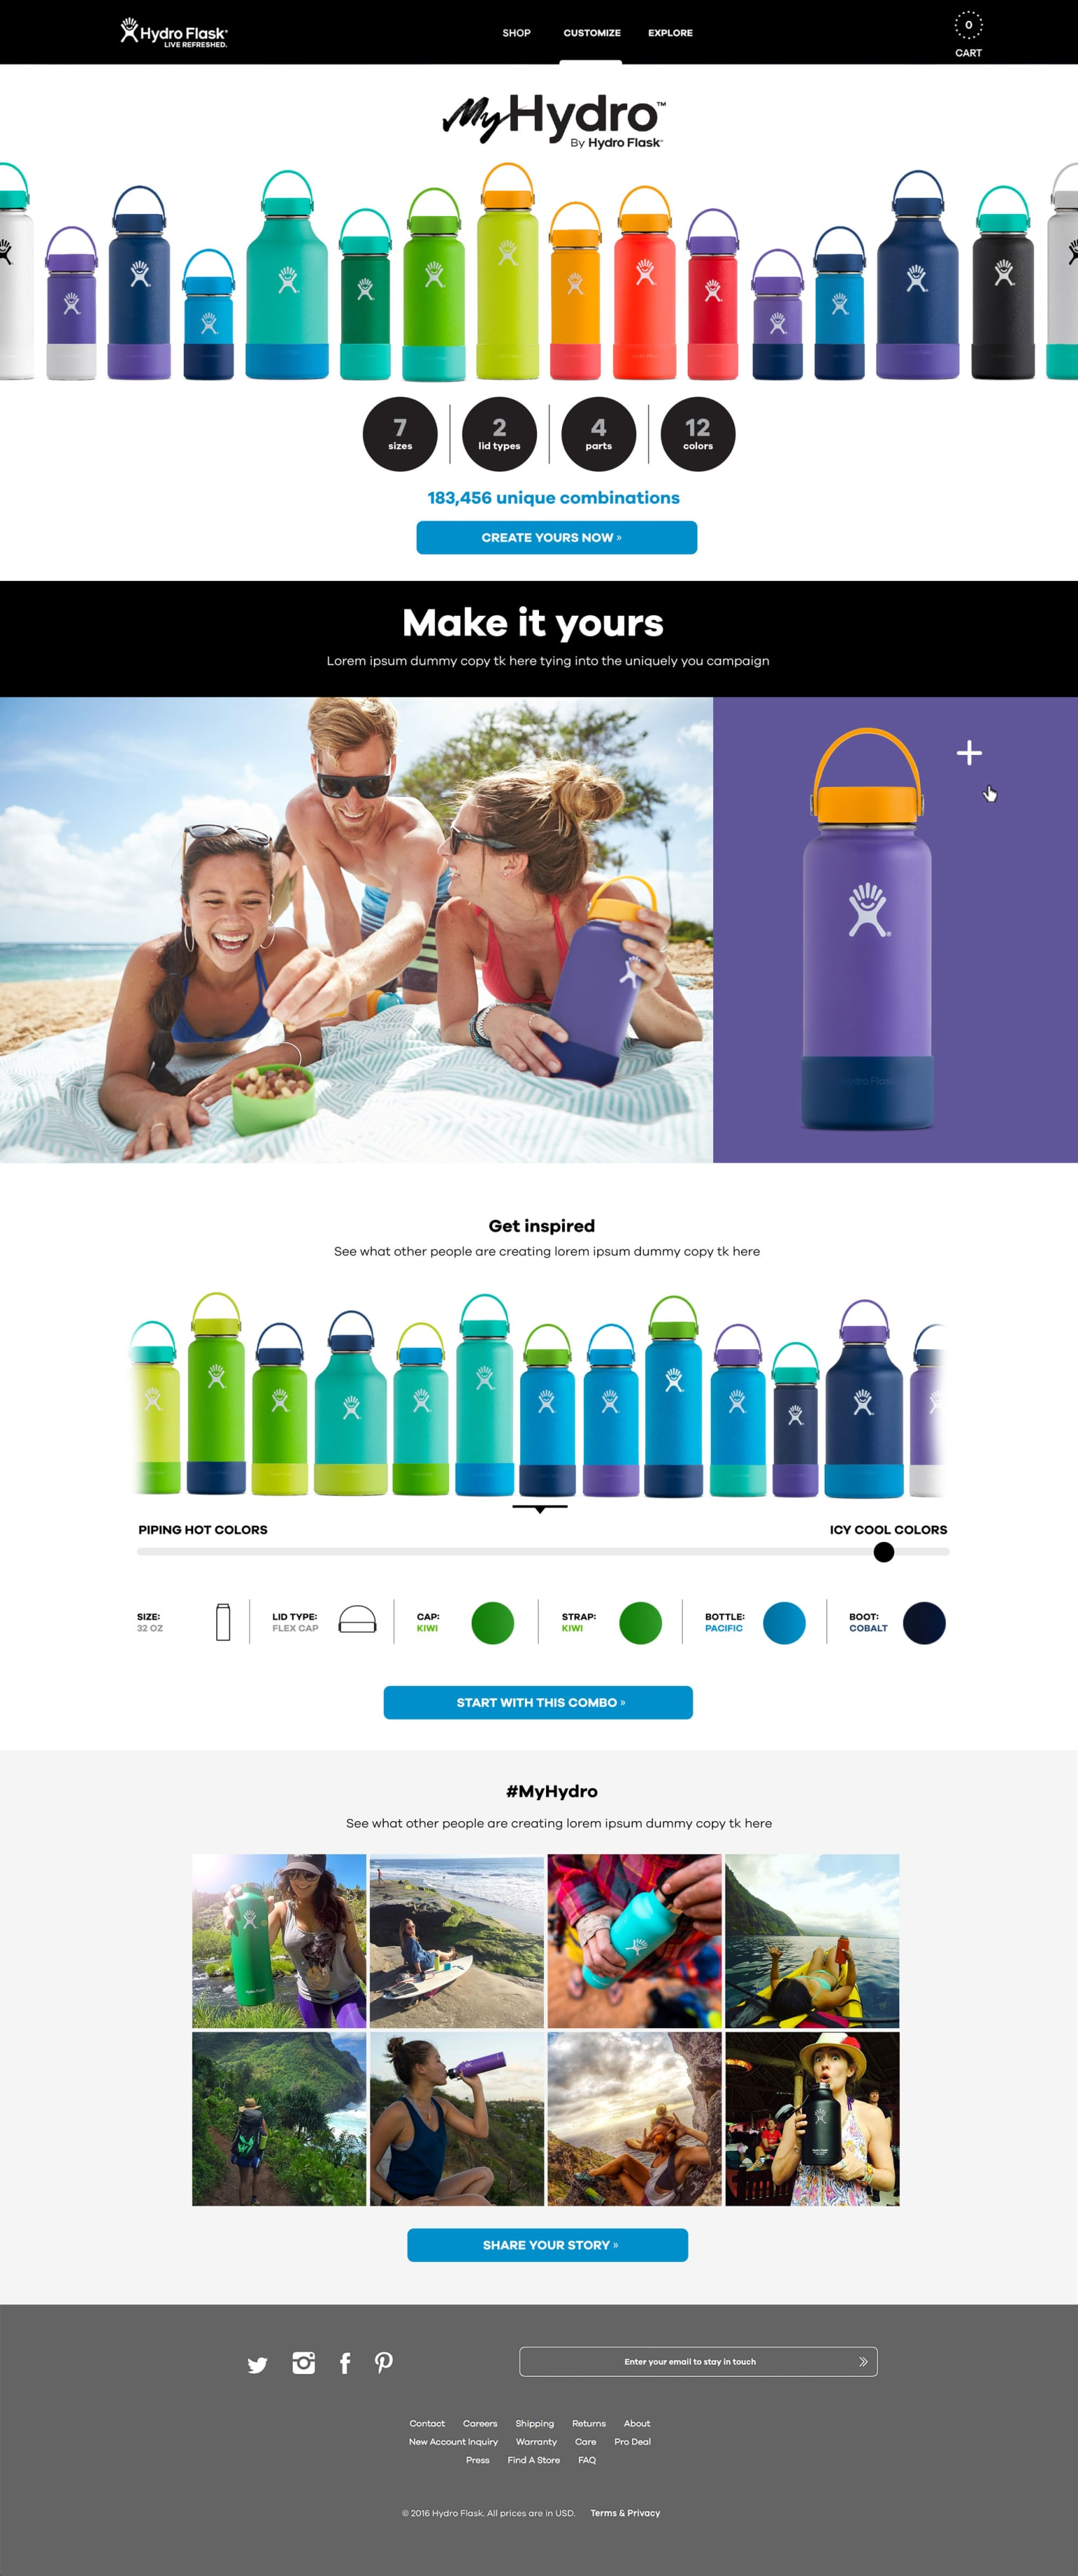 My Hydro product launch & website build